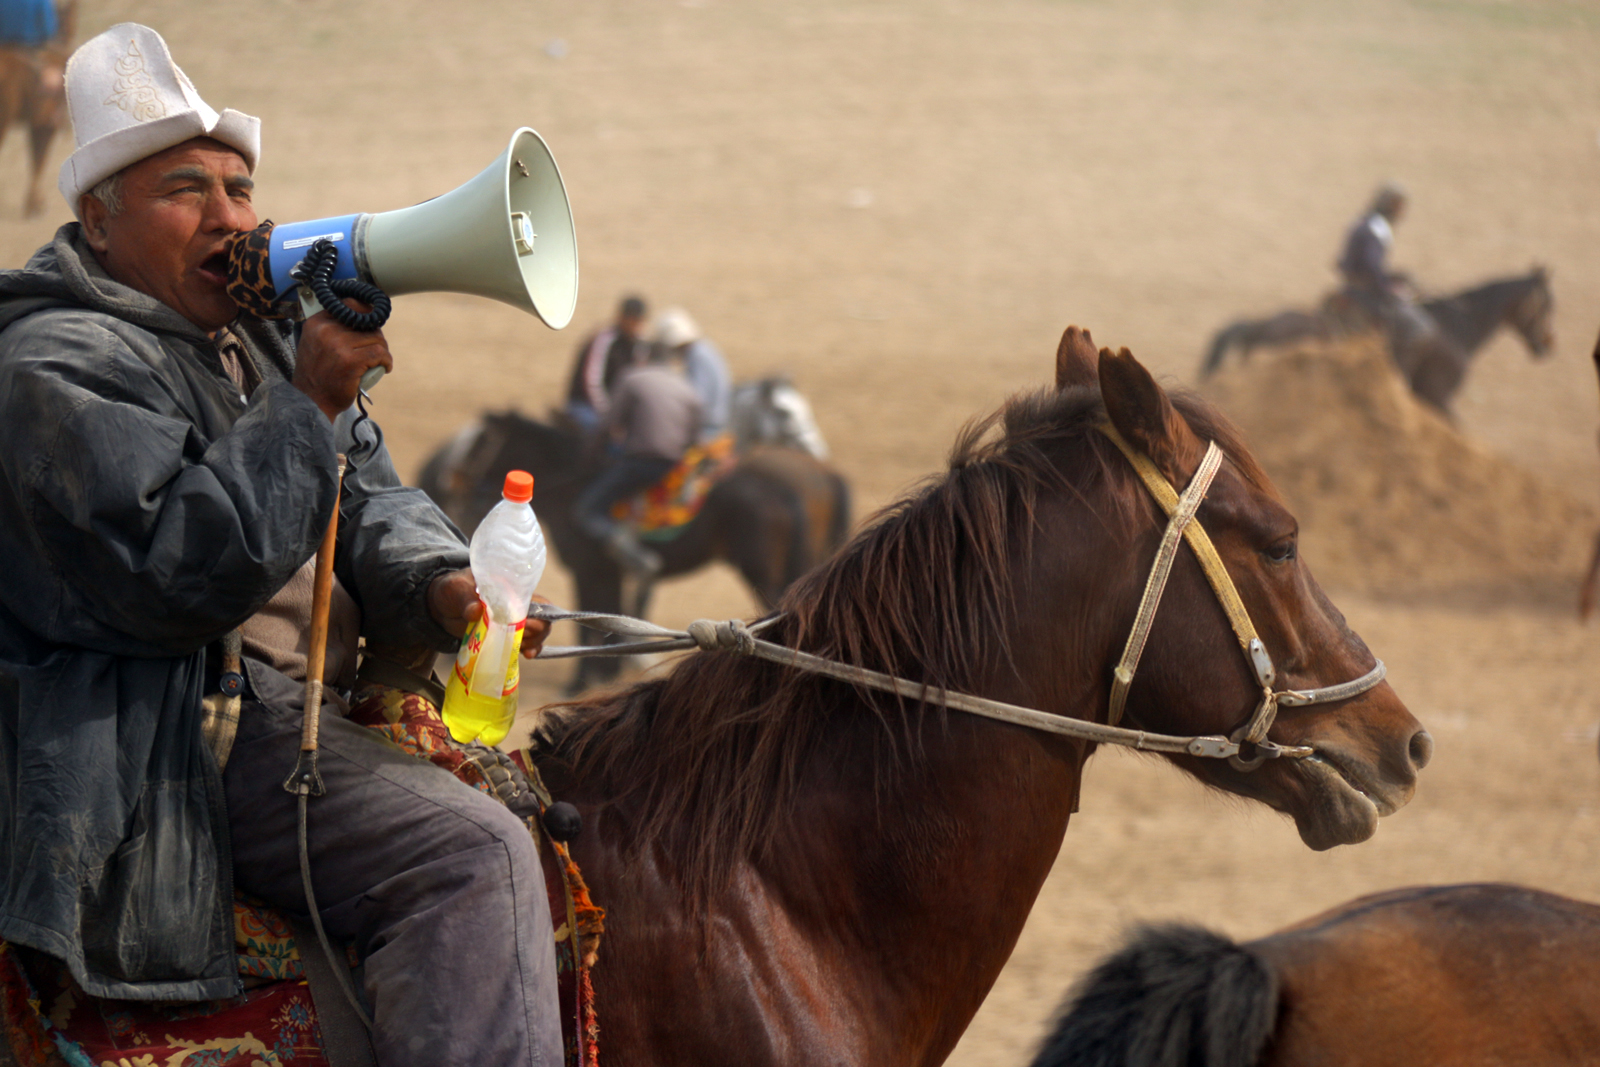 Buzkashi teller of stories